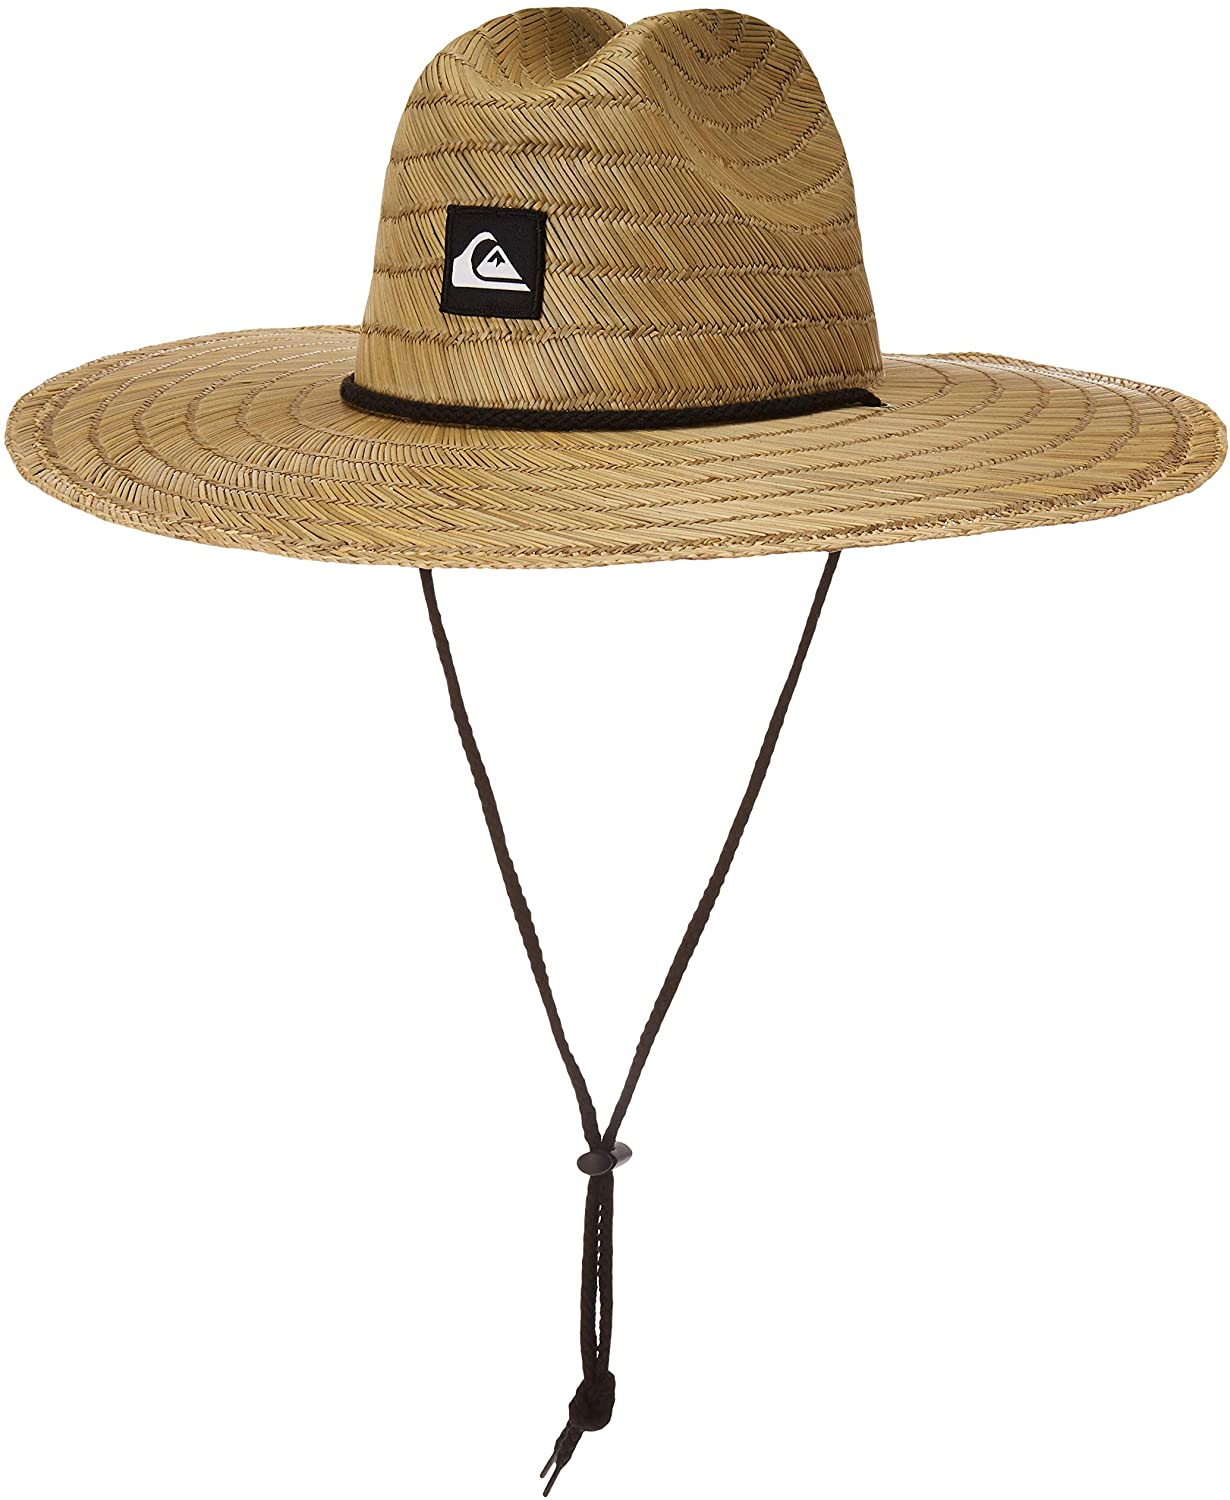 Quiksilver Boys Pierside - Straw Lifeguard Hat for Boys 8-16 Straw Lifeguard Hat